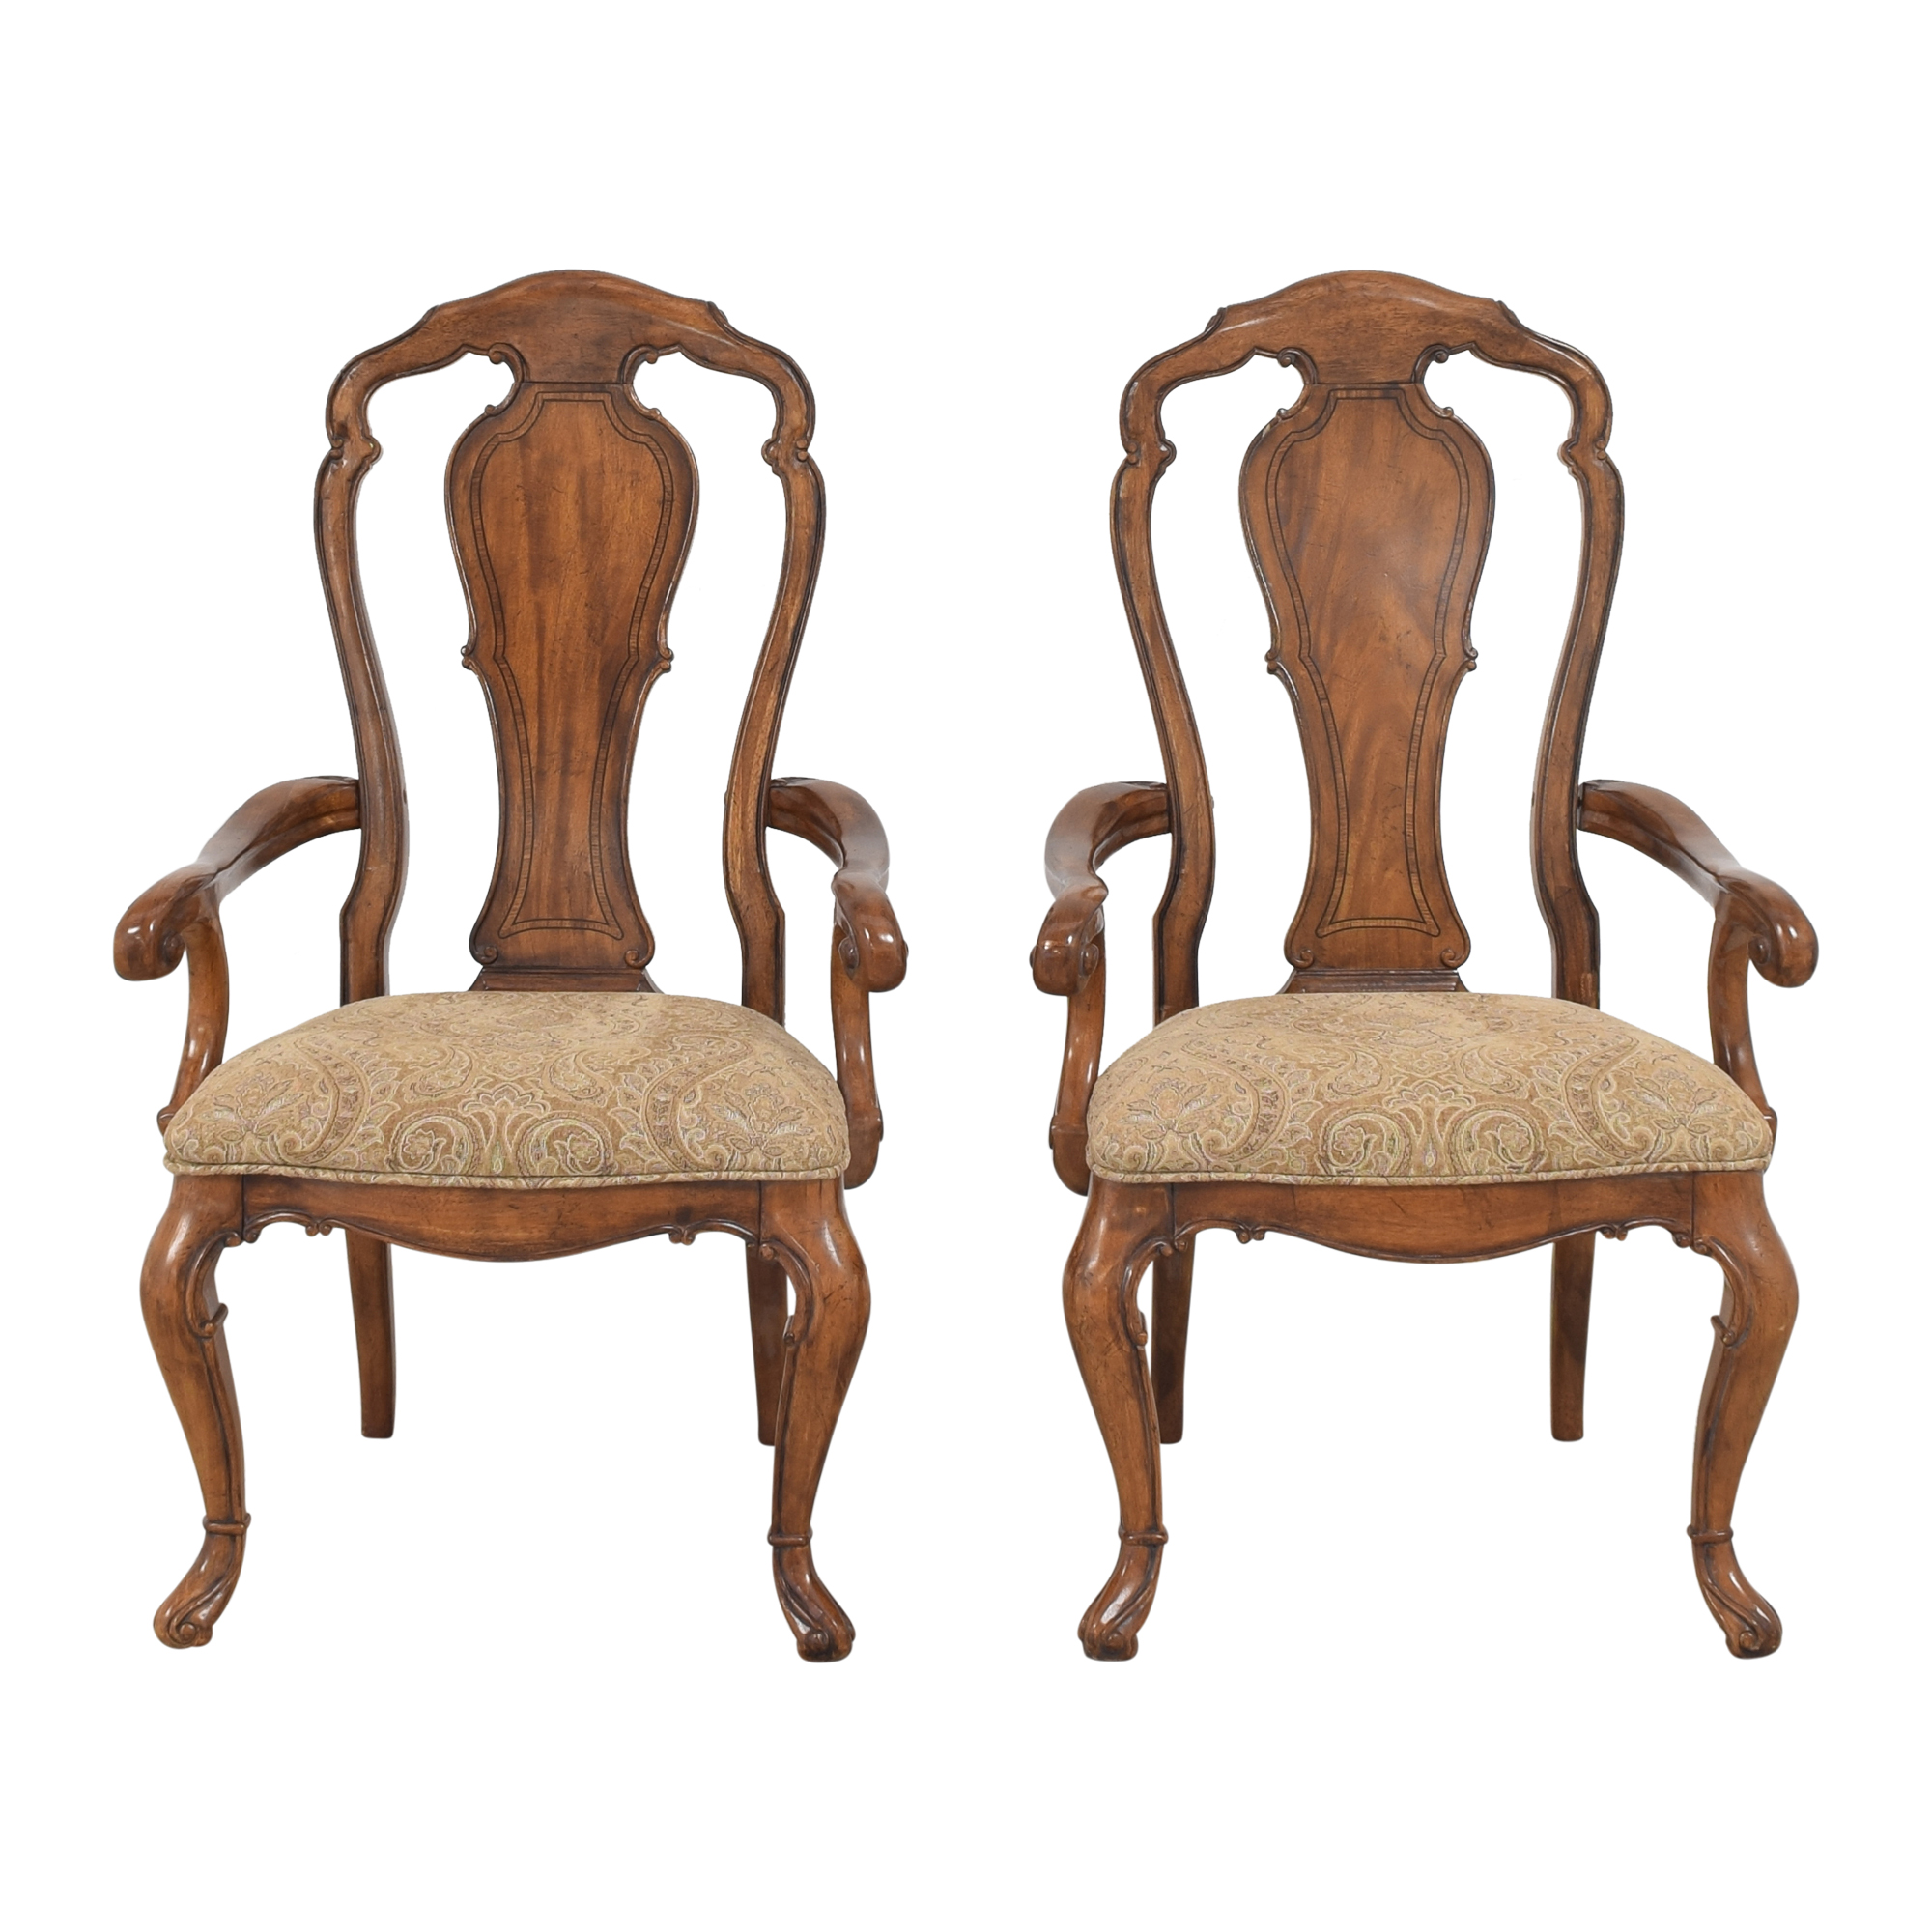 Thomasville Thomasville Ernest Hemingway Granada Dining Arm Chairs used